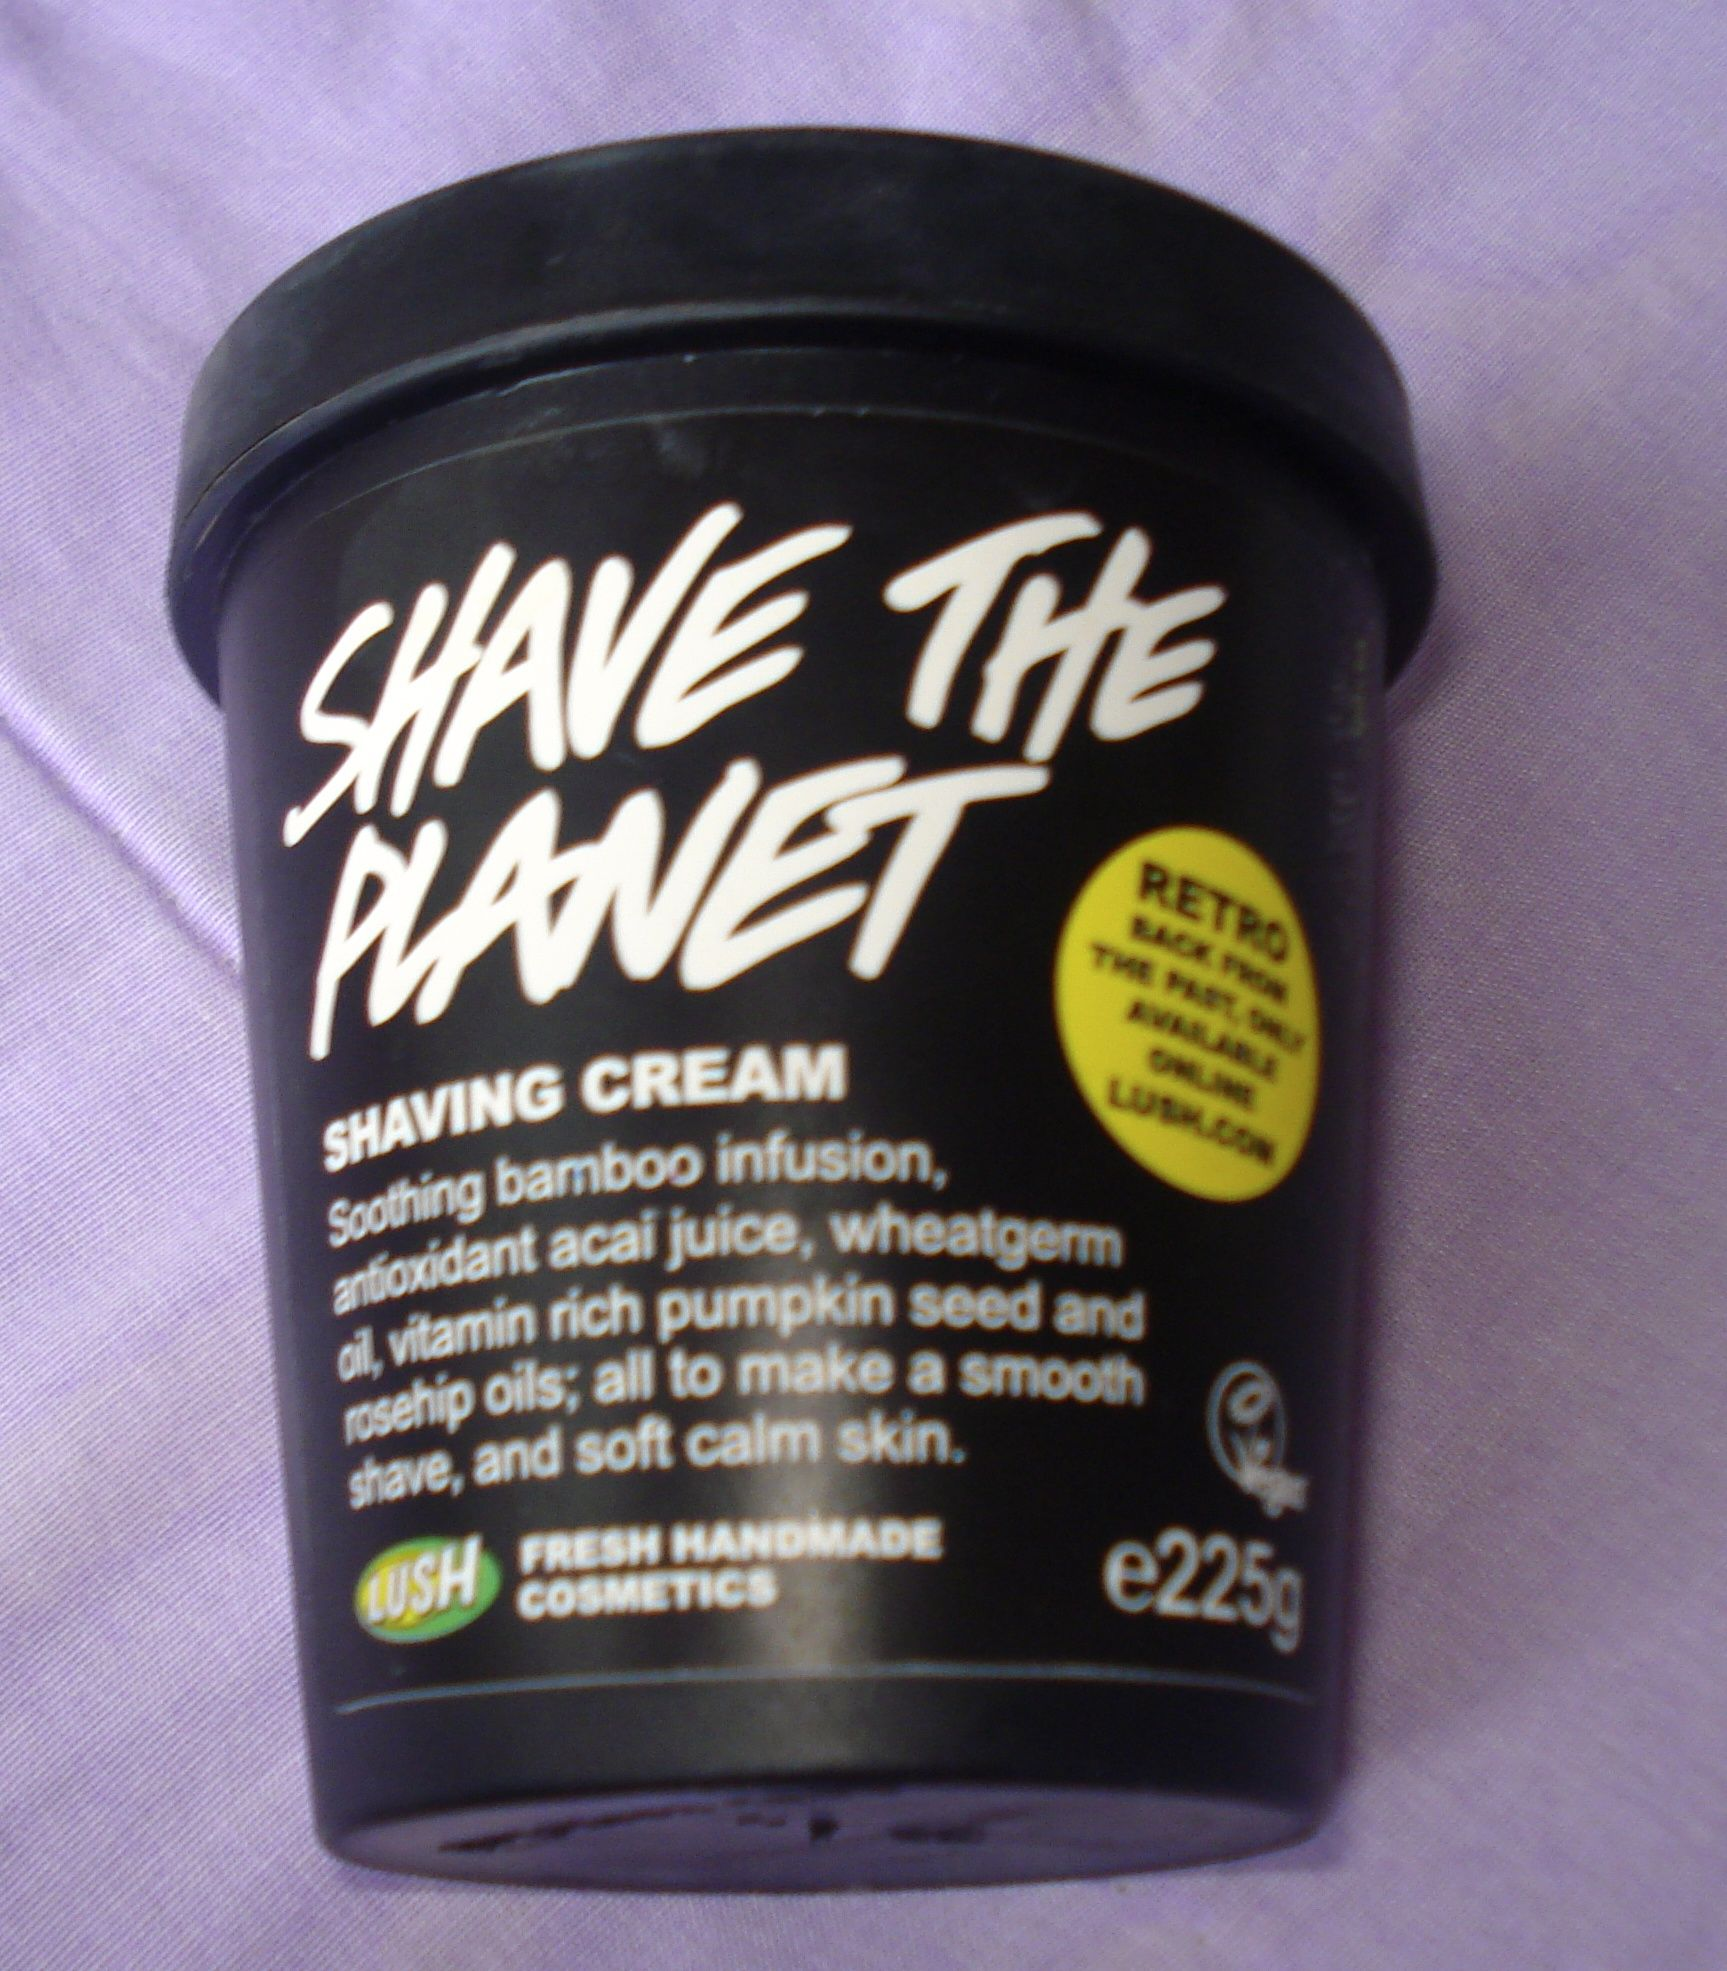 """Shave The Planet Shaving Cream: """"Soothing bamboo infusion, antioxidant acai juice, wheatgerm oil, vitamin rich pumpkin seed and rosehip oils; all to make a smooth shave, and soft calm skin"""""""